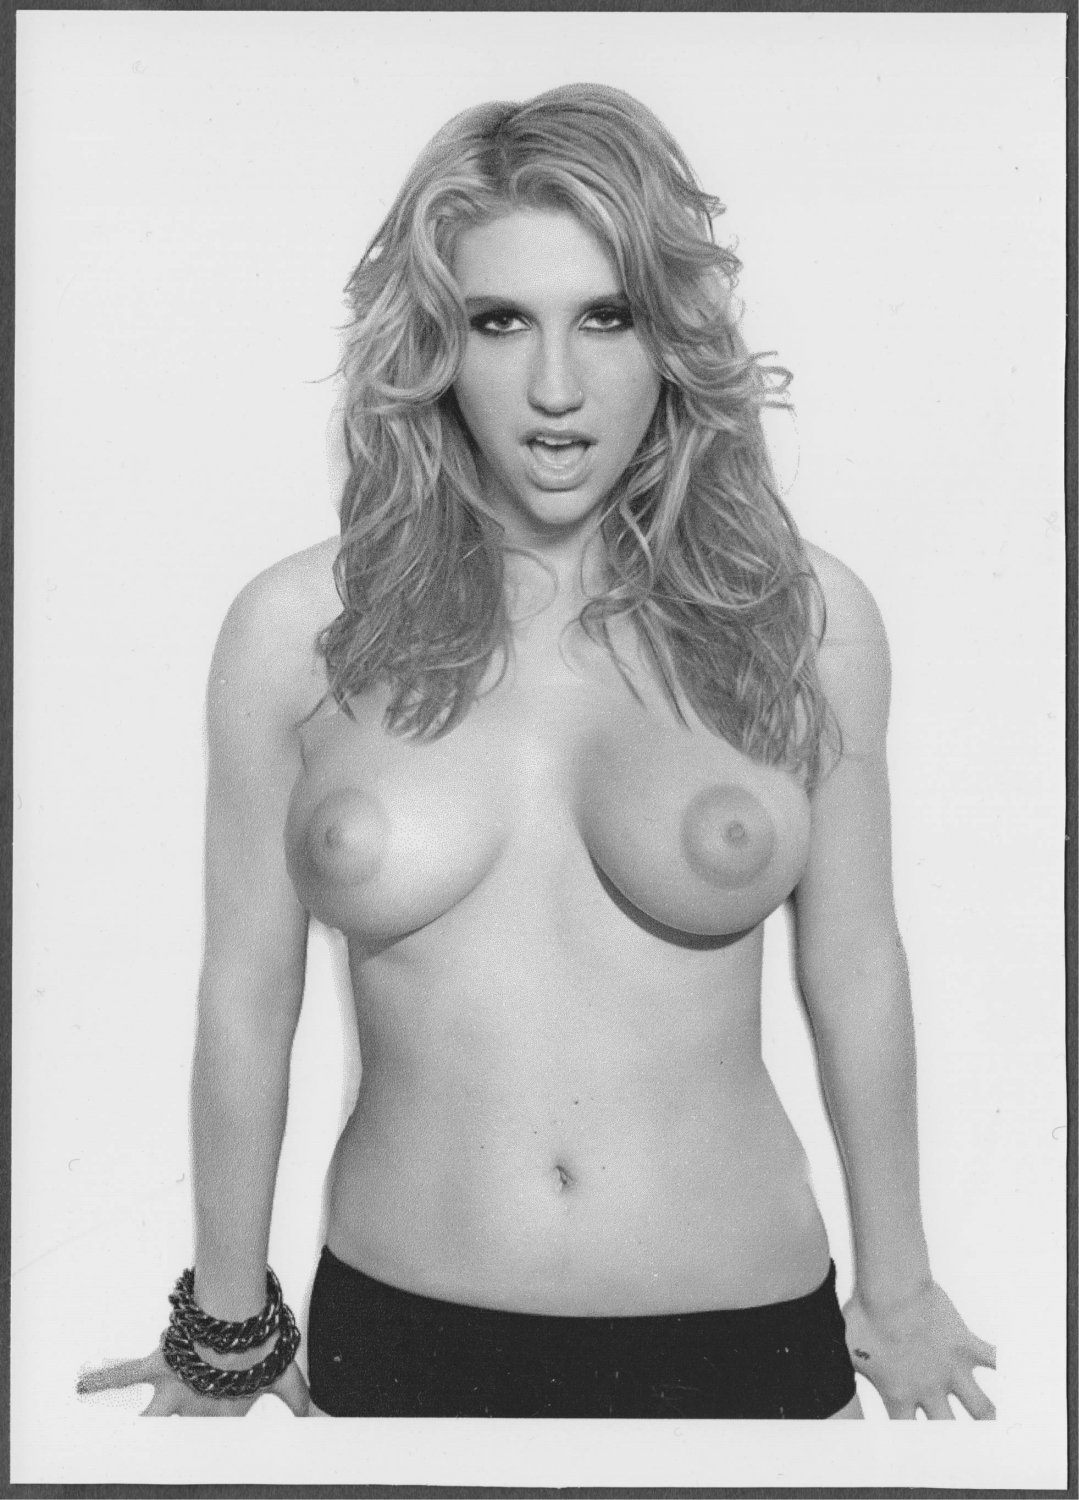 KESHA TOTALLY NUDE BIG BREASTS SHAVED PUSSY NEW REPRINT 5 X 7 #1